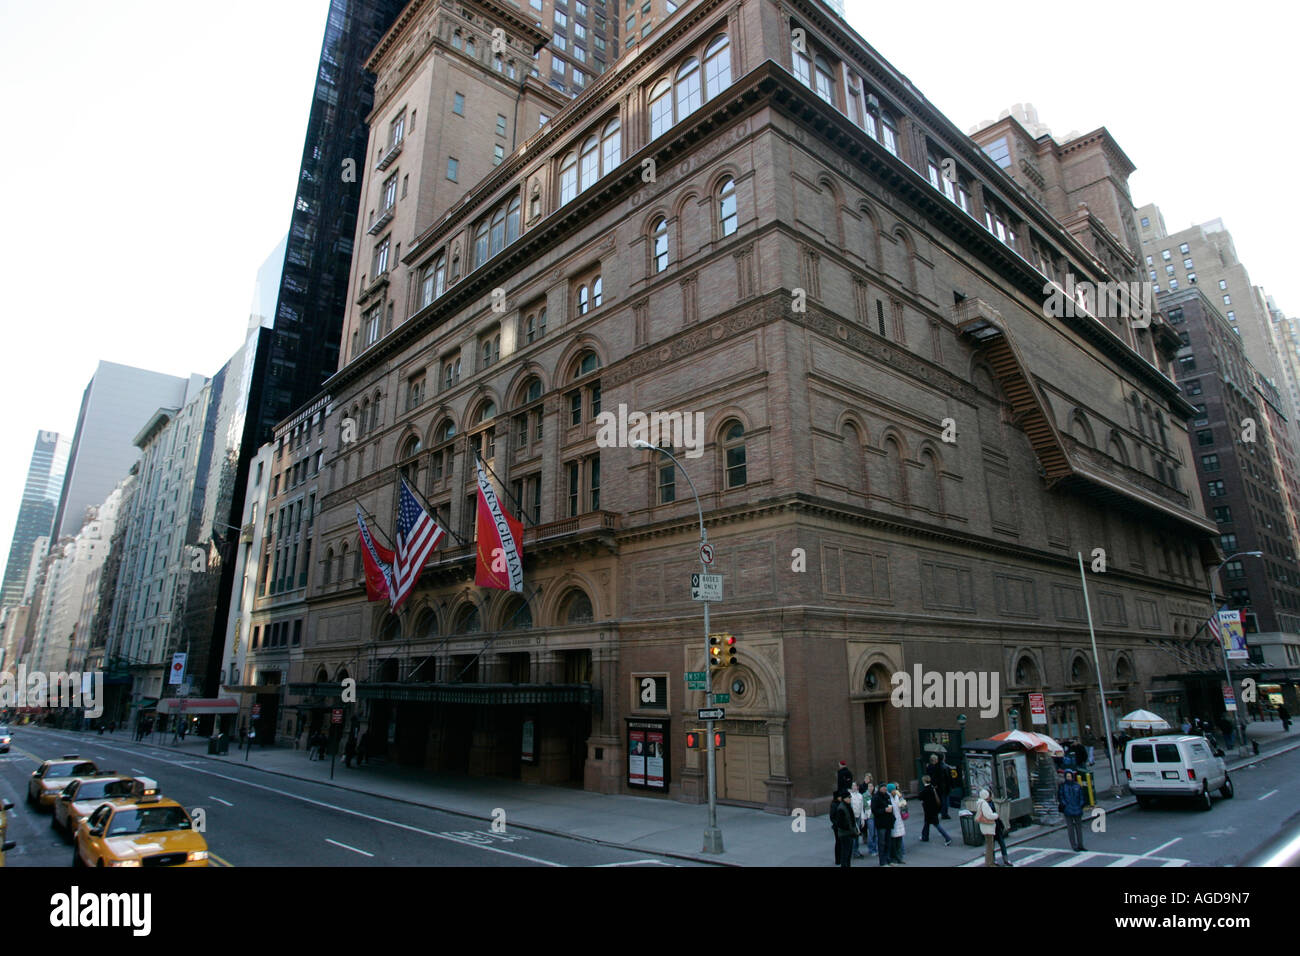 carnegie hall on corner of west 57th st and 7th avenue new york city new york USA - Stock Image